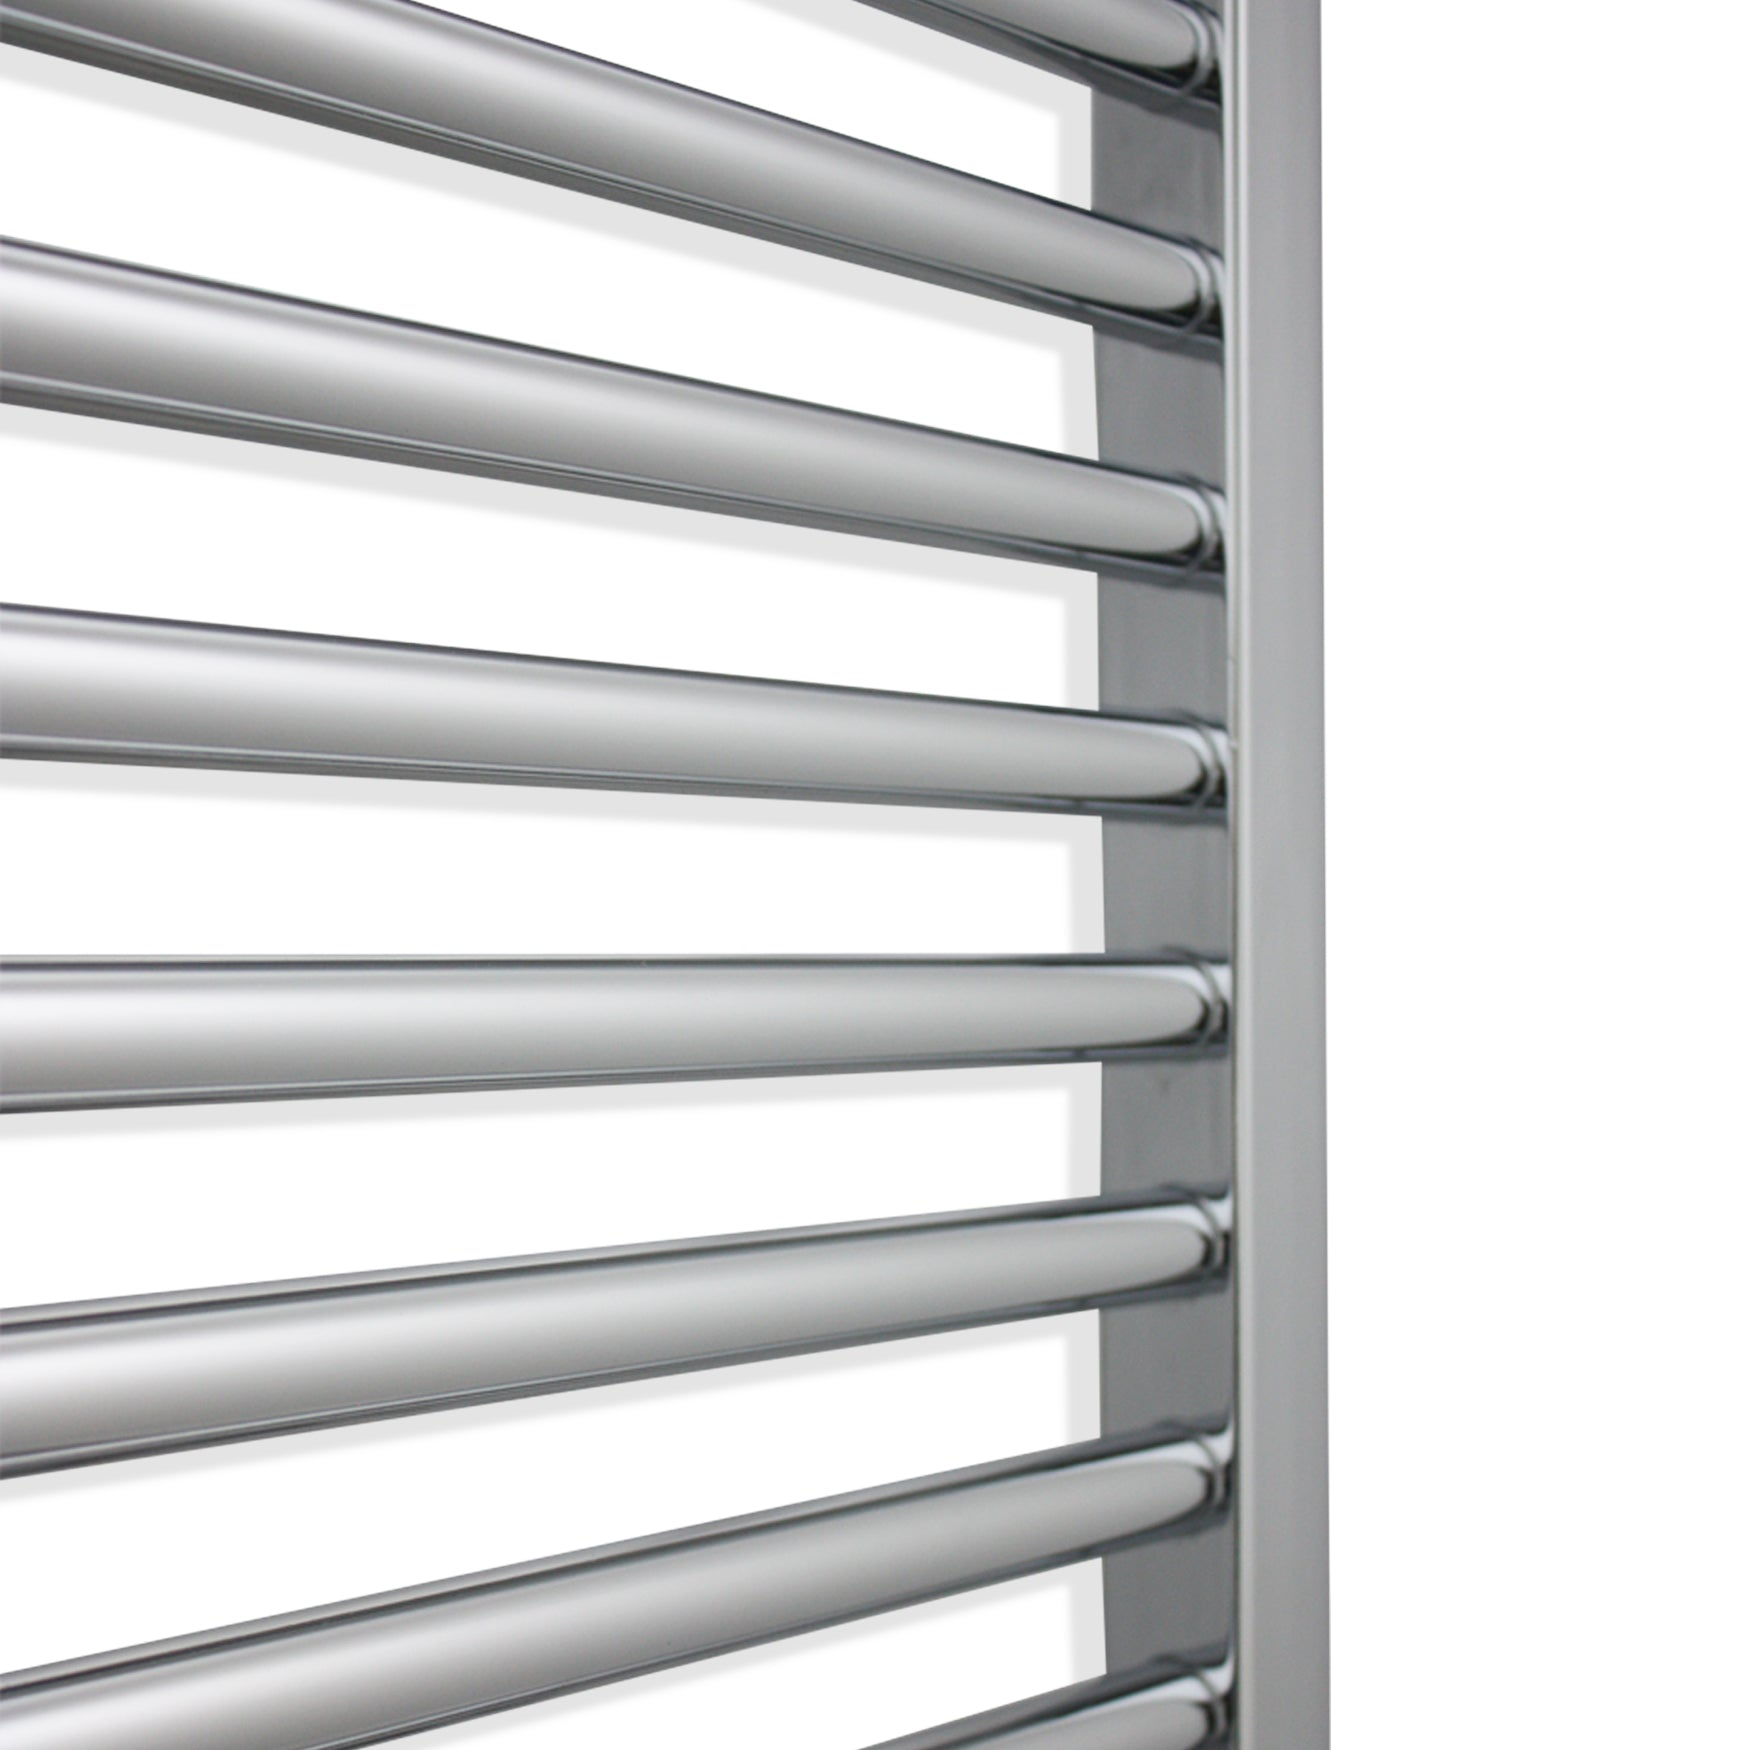 650mm Wide 600mm High Flat Chrome Pre-Filled Electric Heated Towel Rail Radiator HTR